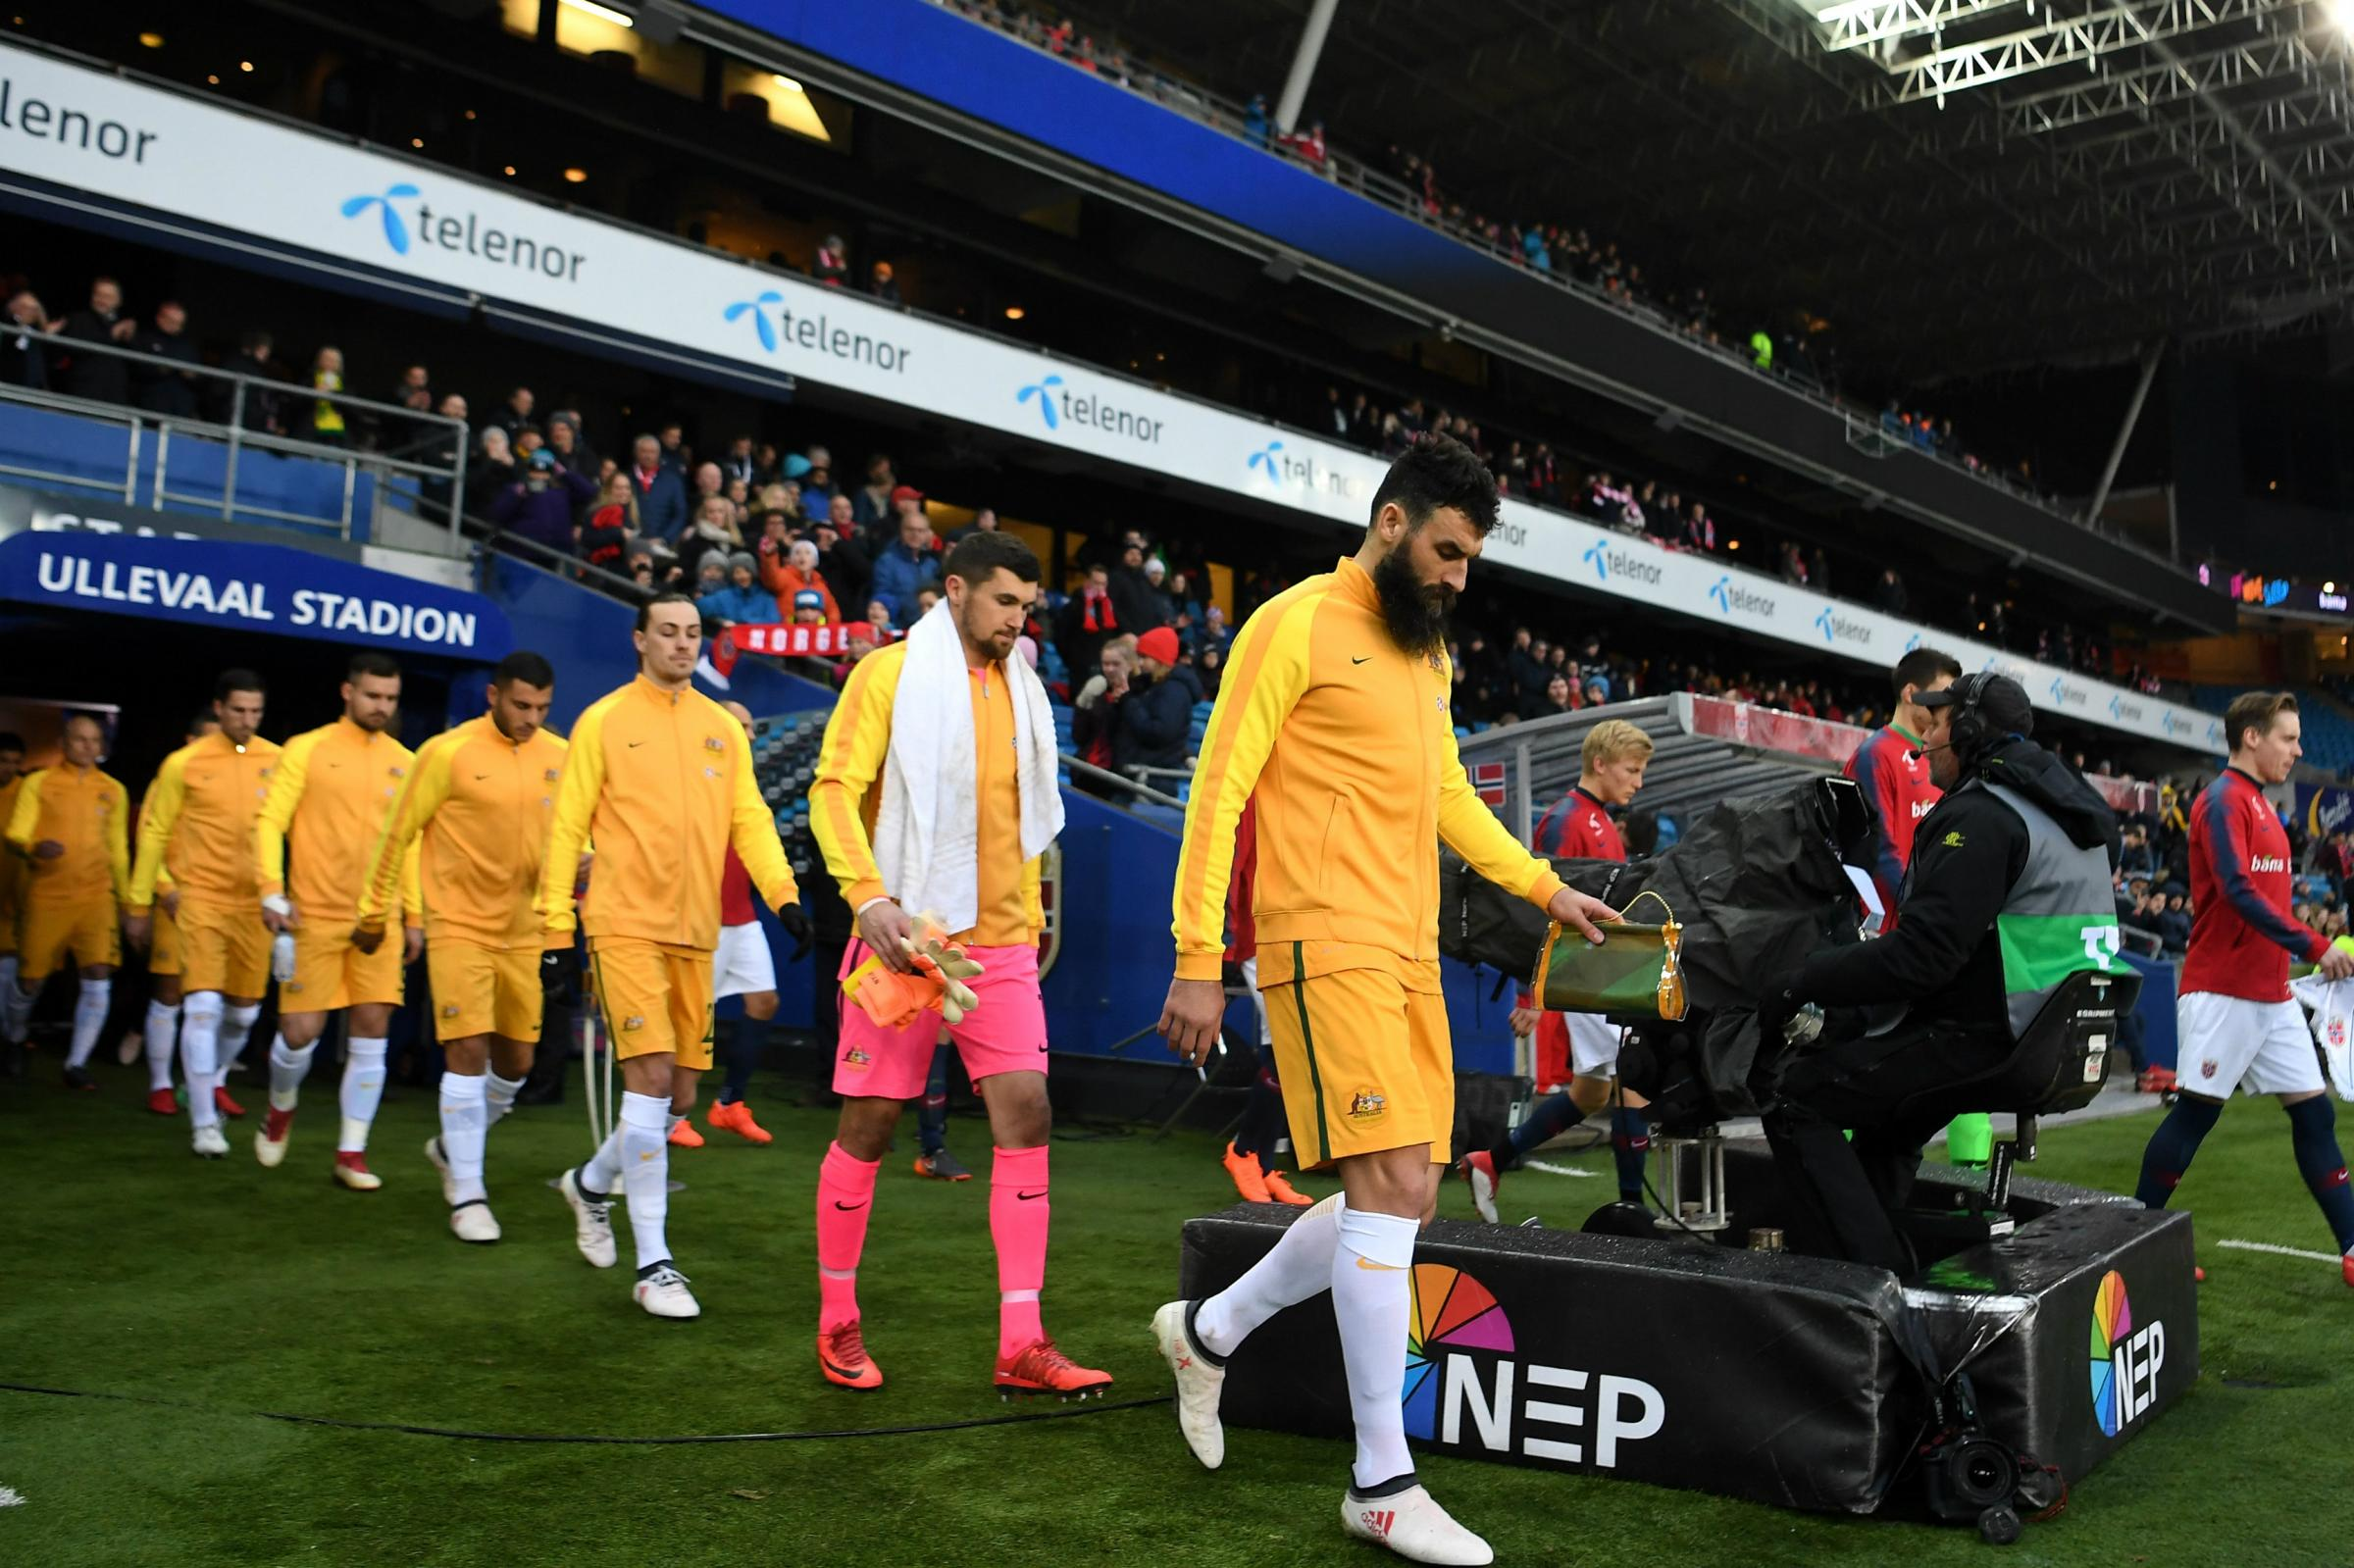 Socceroos walk out